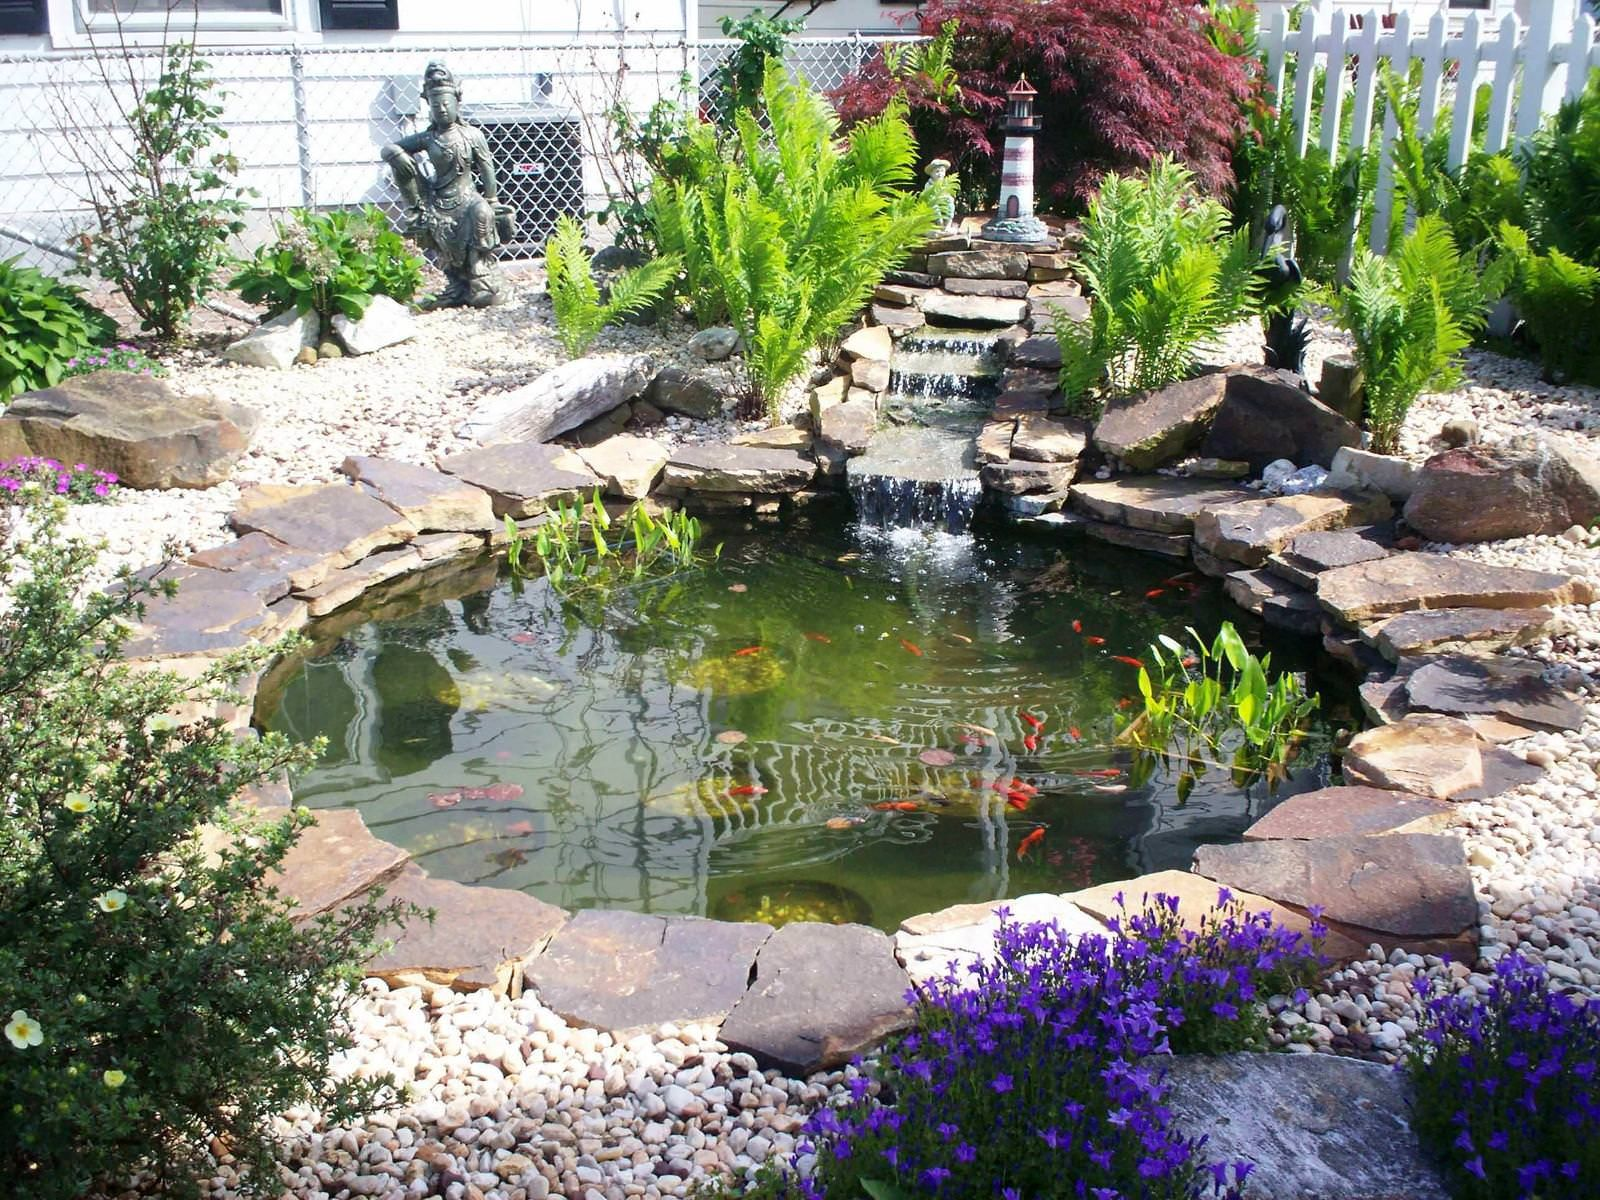 Small garden or backyard aquarium ideas practic ideas for Fish ponds for small gardens